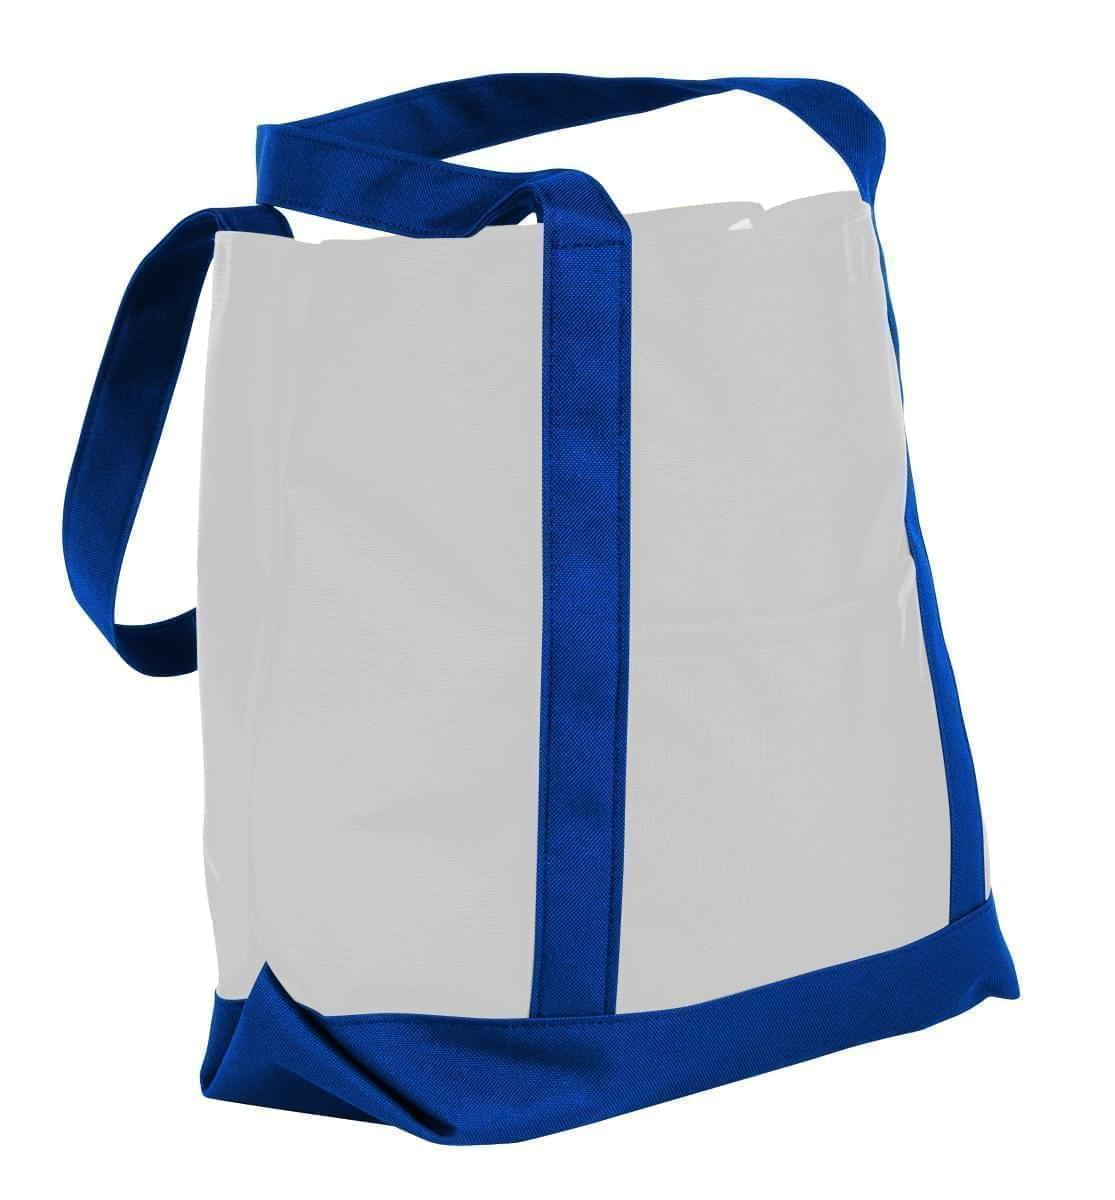 USA Made Nylon Poly Boat Tote Bags, White-Royal Blue, XAACL1UA3M